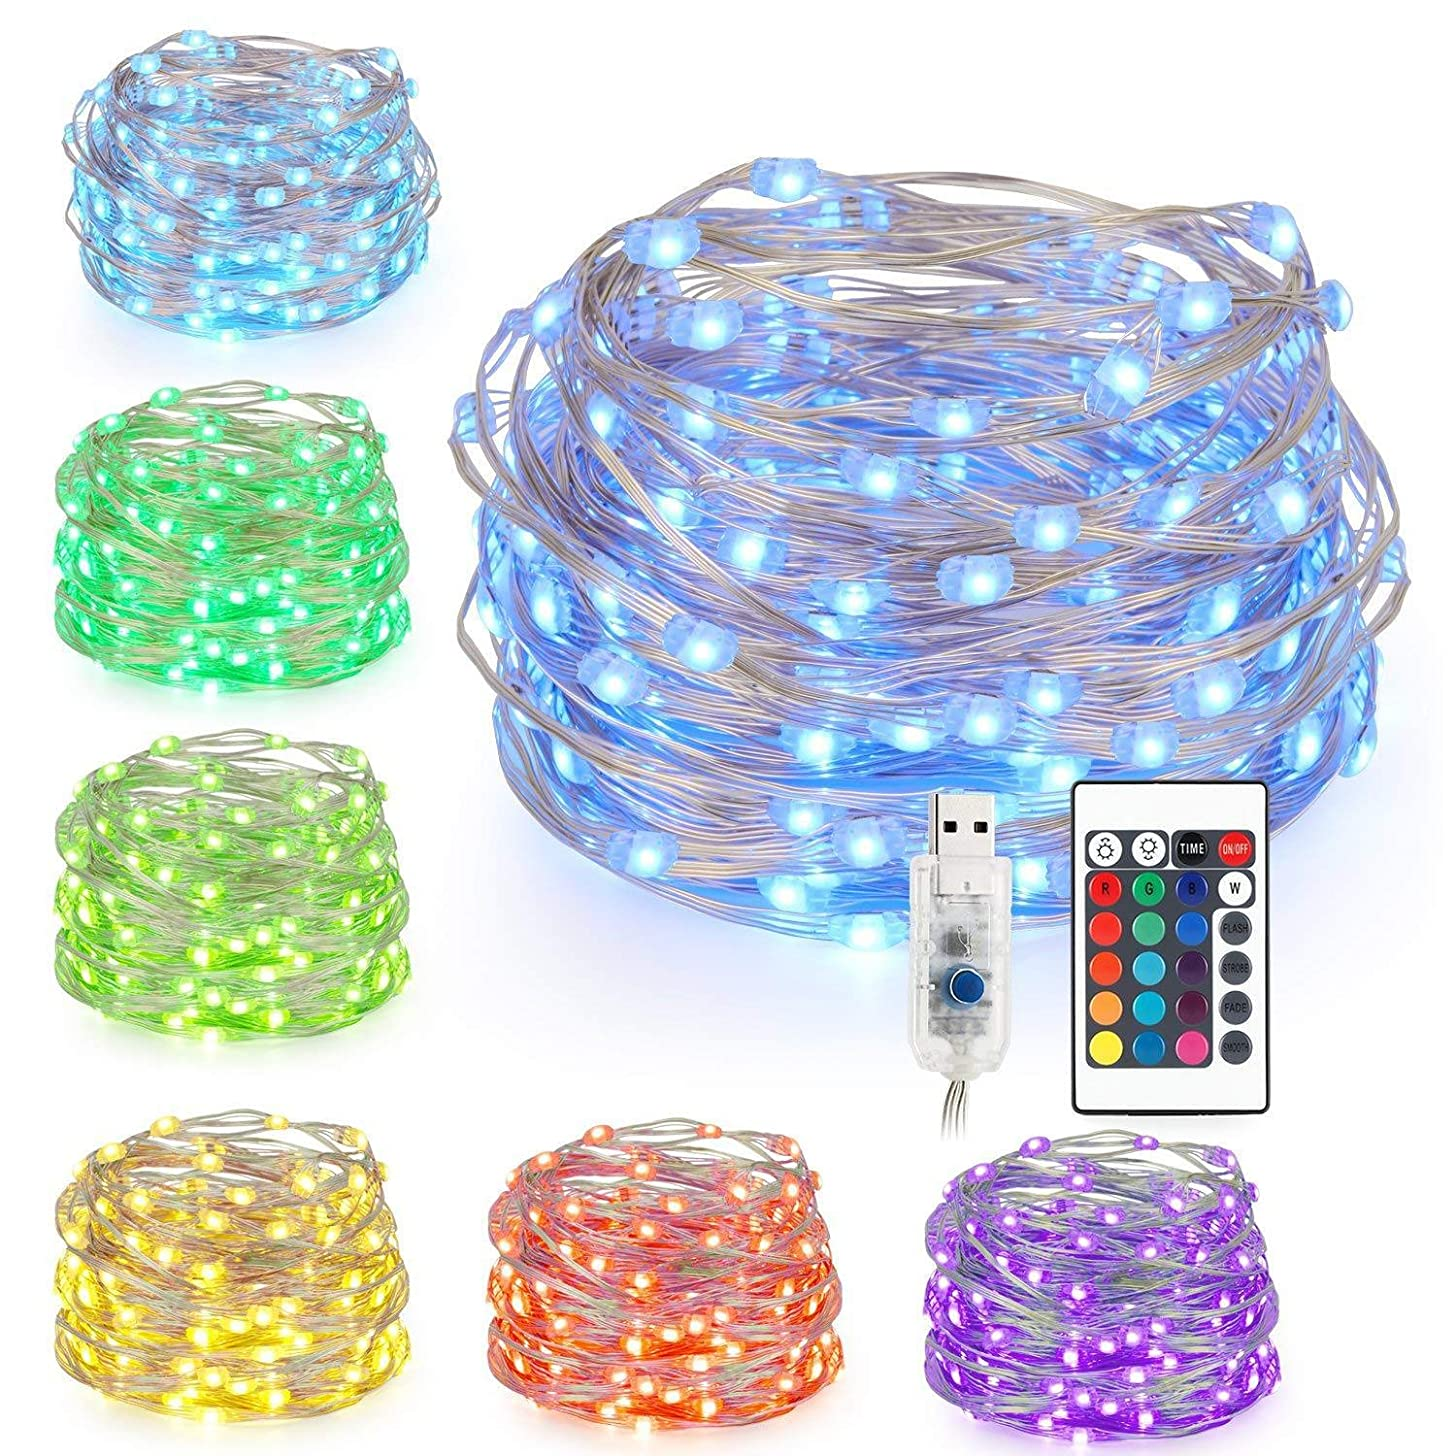 String Lights with RF Remote LED Strip Lights 16FT 50LED RGB Remote Control Waterproof Decorative Lights for Bedroom Patio Parties (16ft)